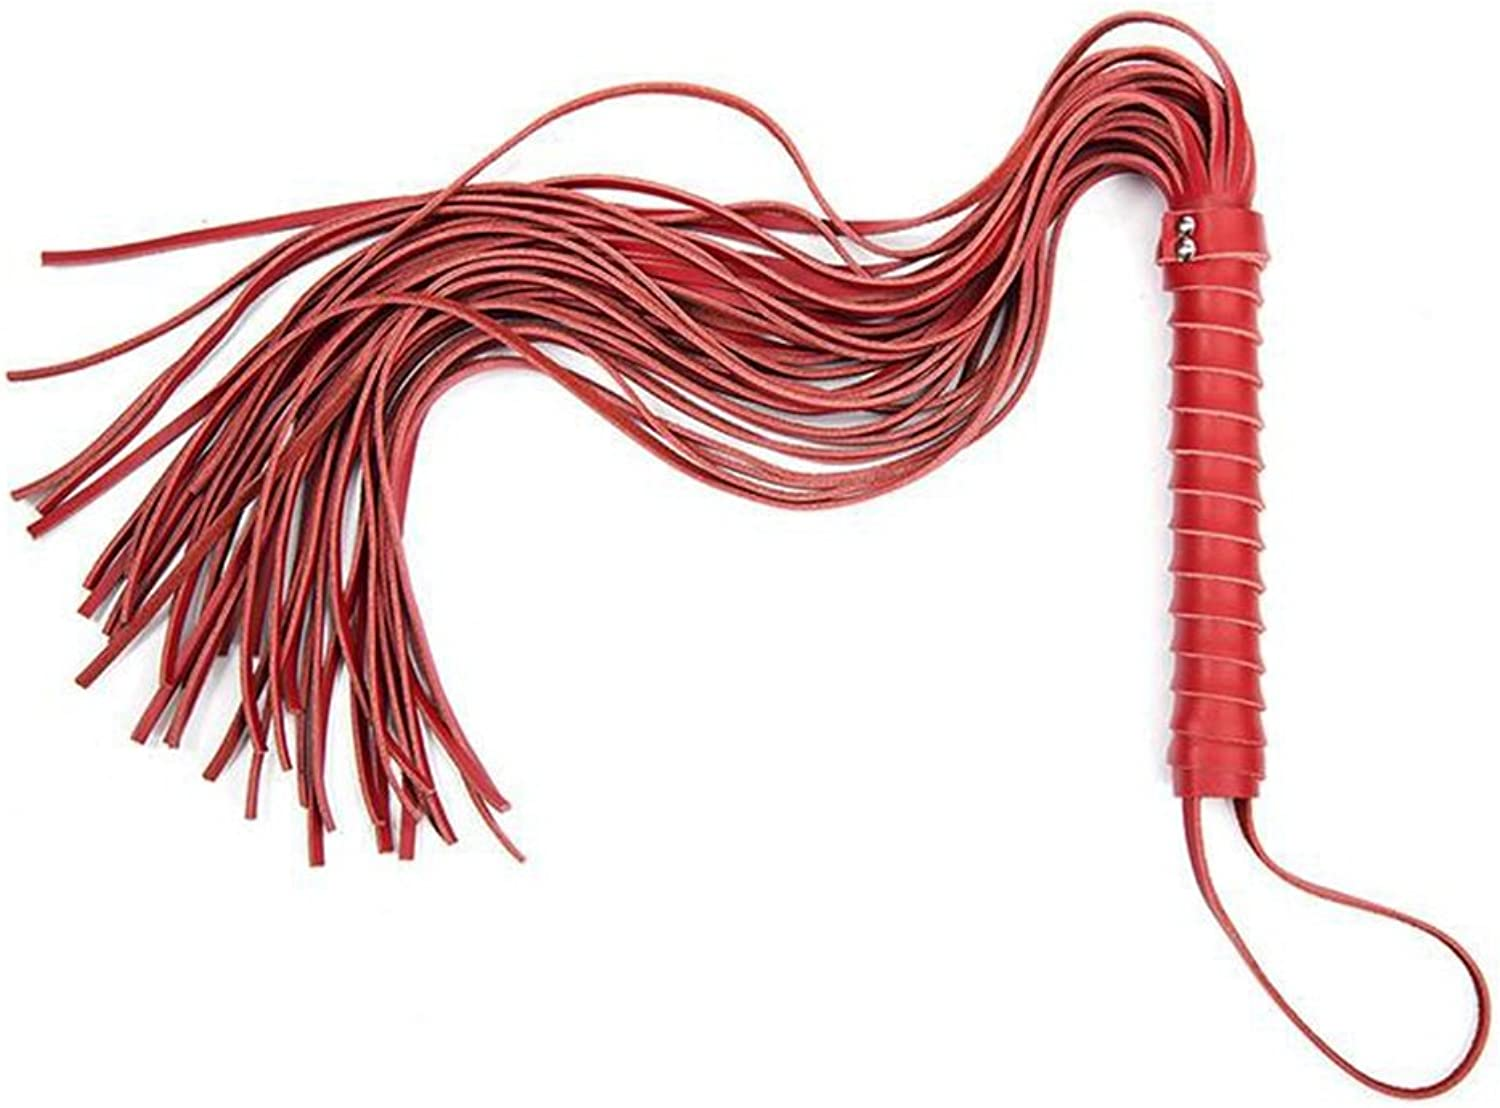 SM Fetish Whip Flogger PU Leather Role Play with Rivet Handle Bondage Restraints For Male Female Adult 68cm